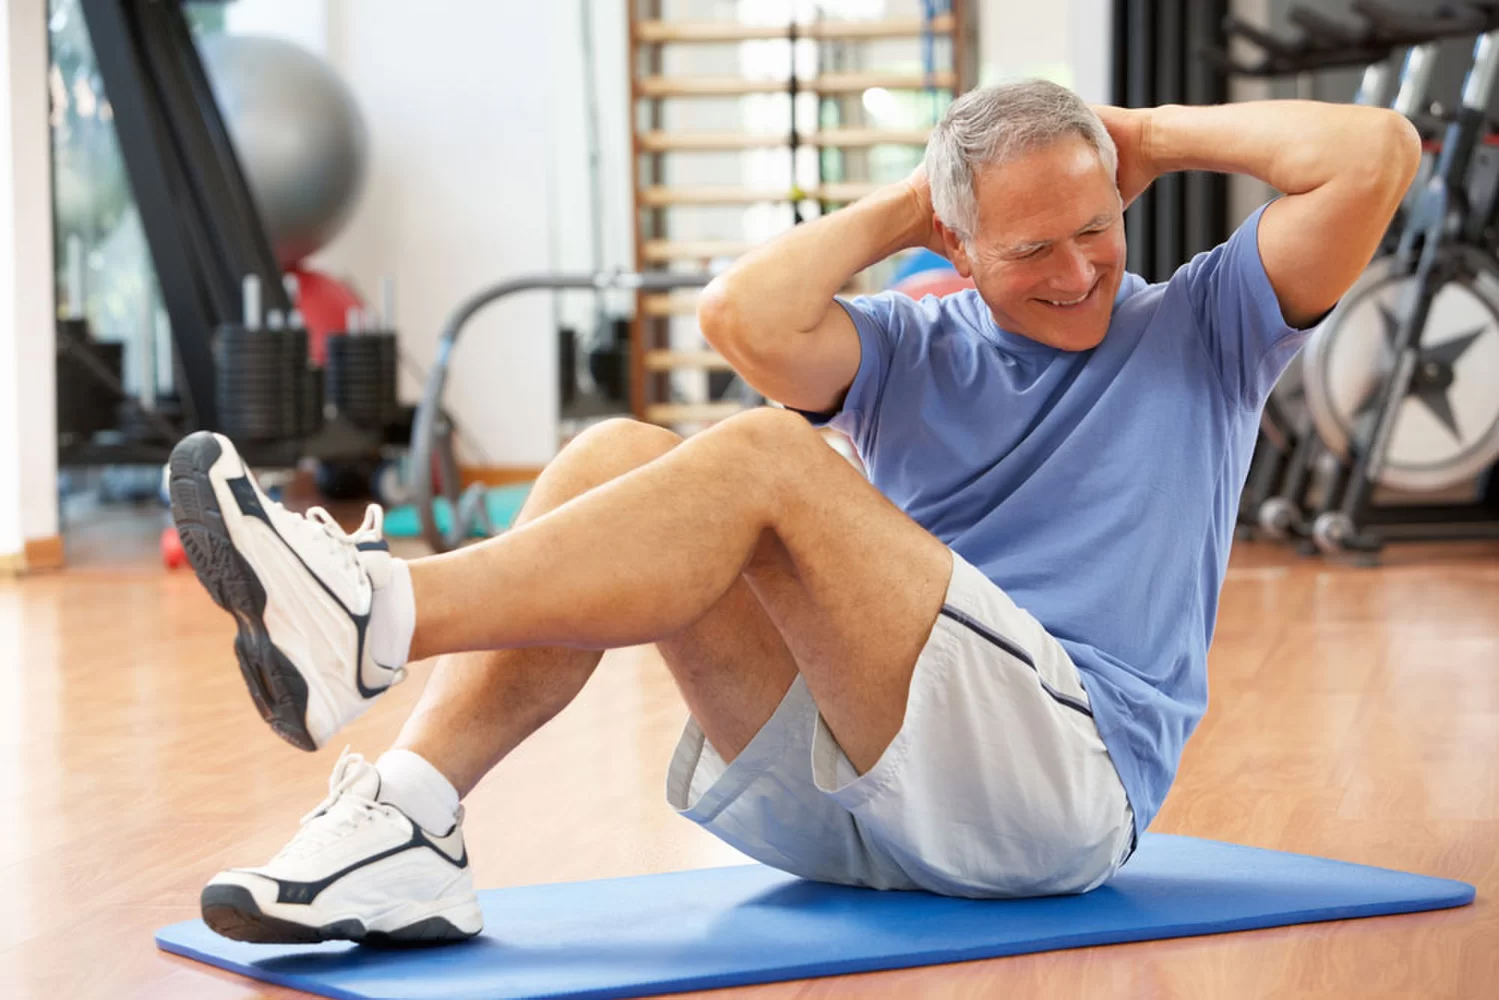 An older man doing exercises at the gym